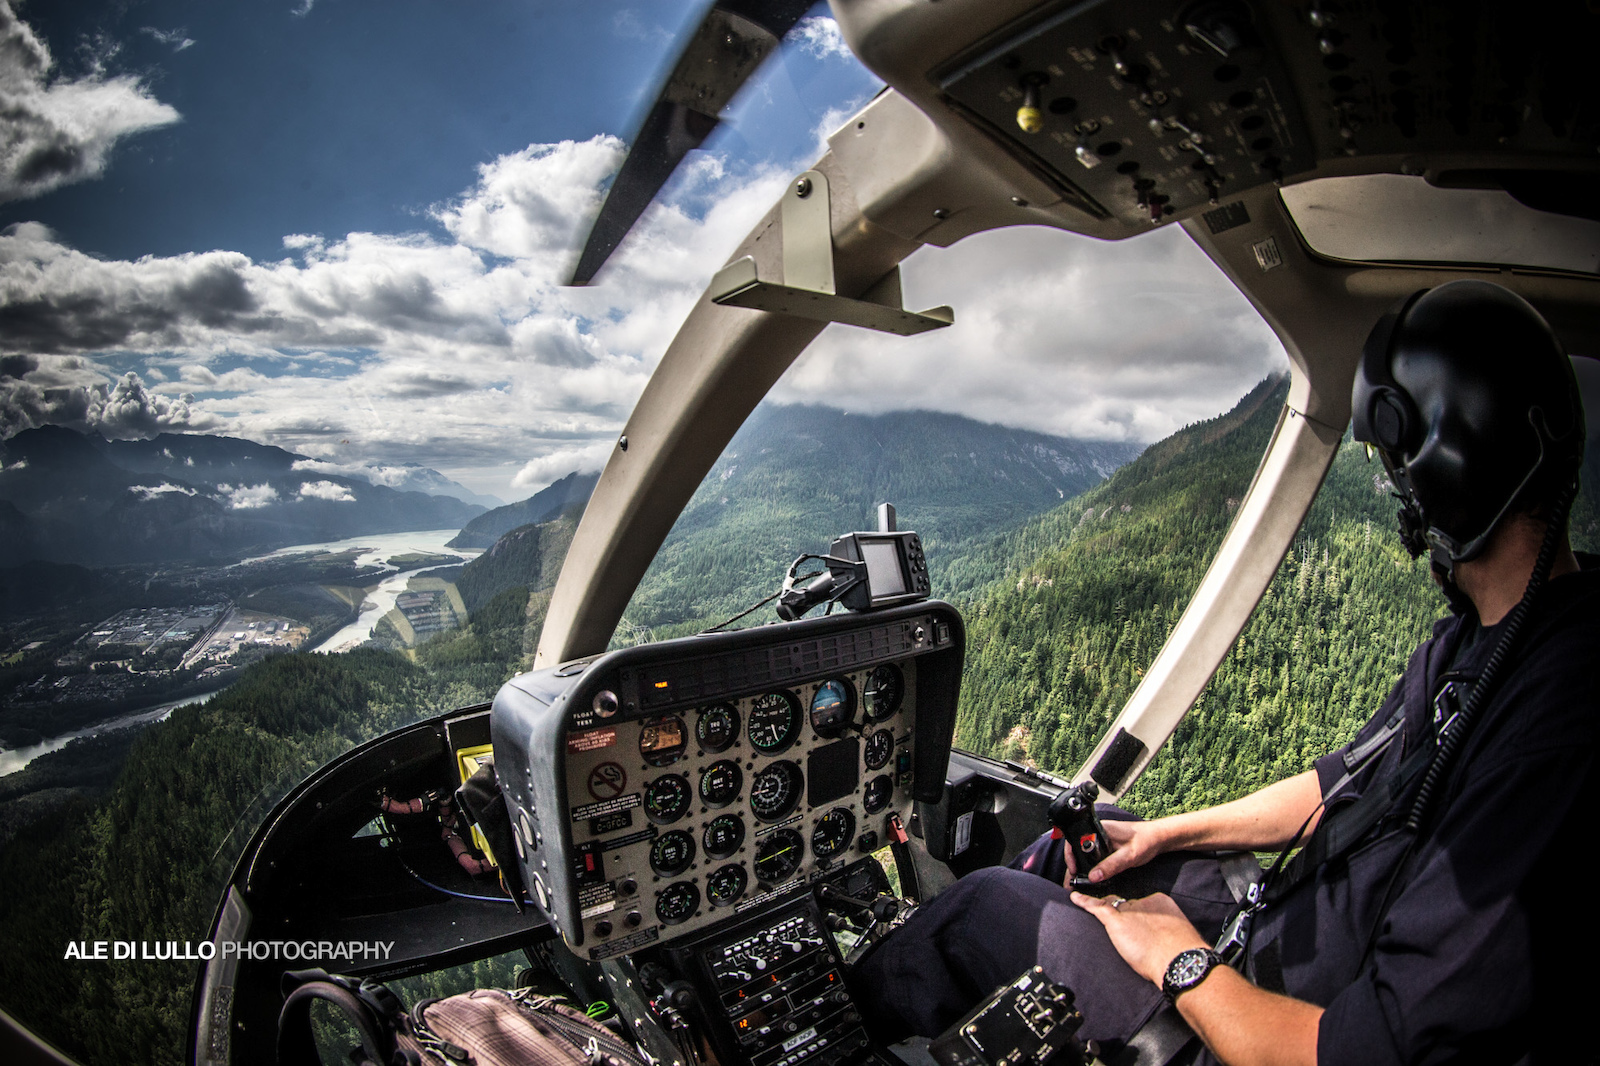 Every ride in a heli is a treat.